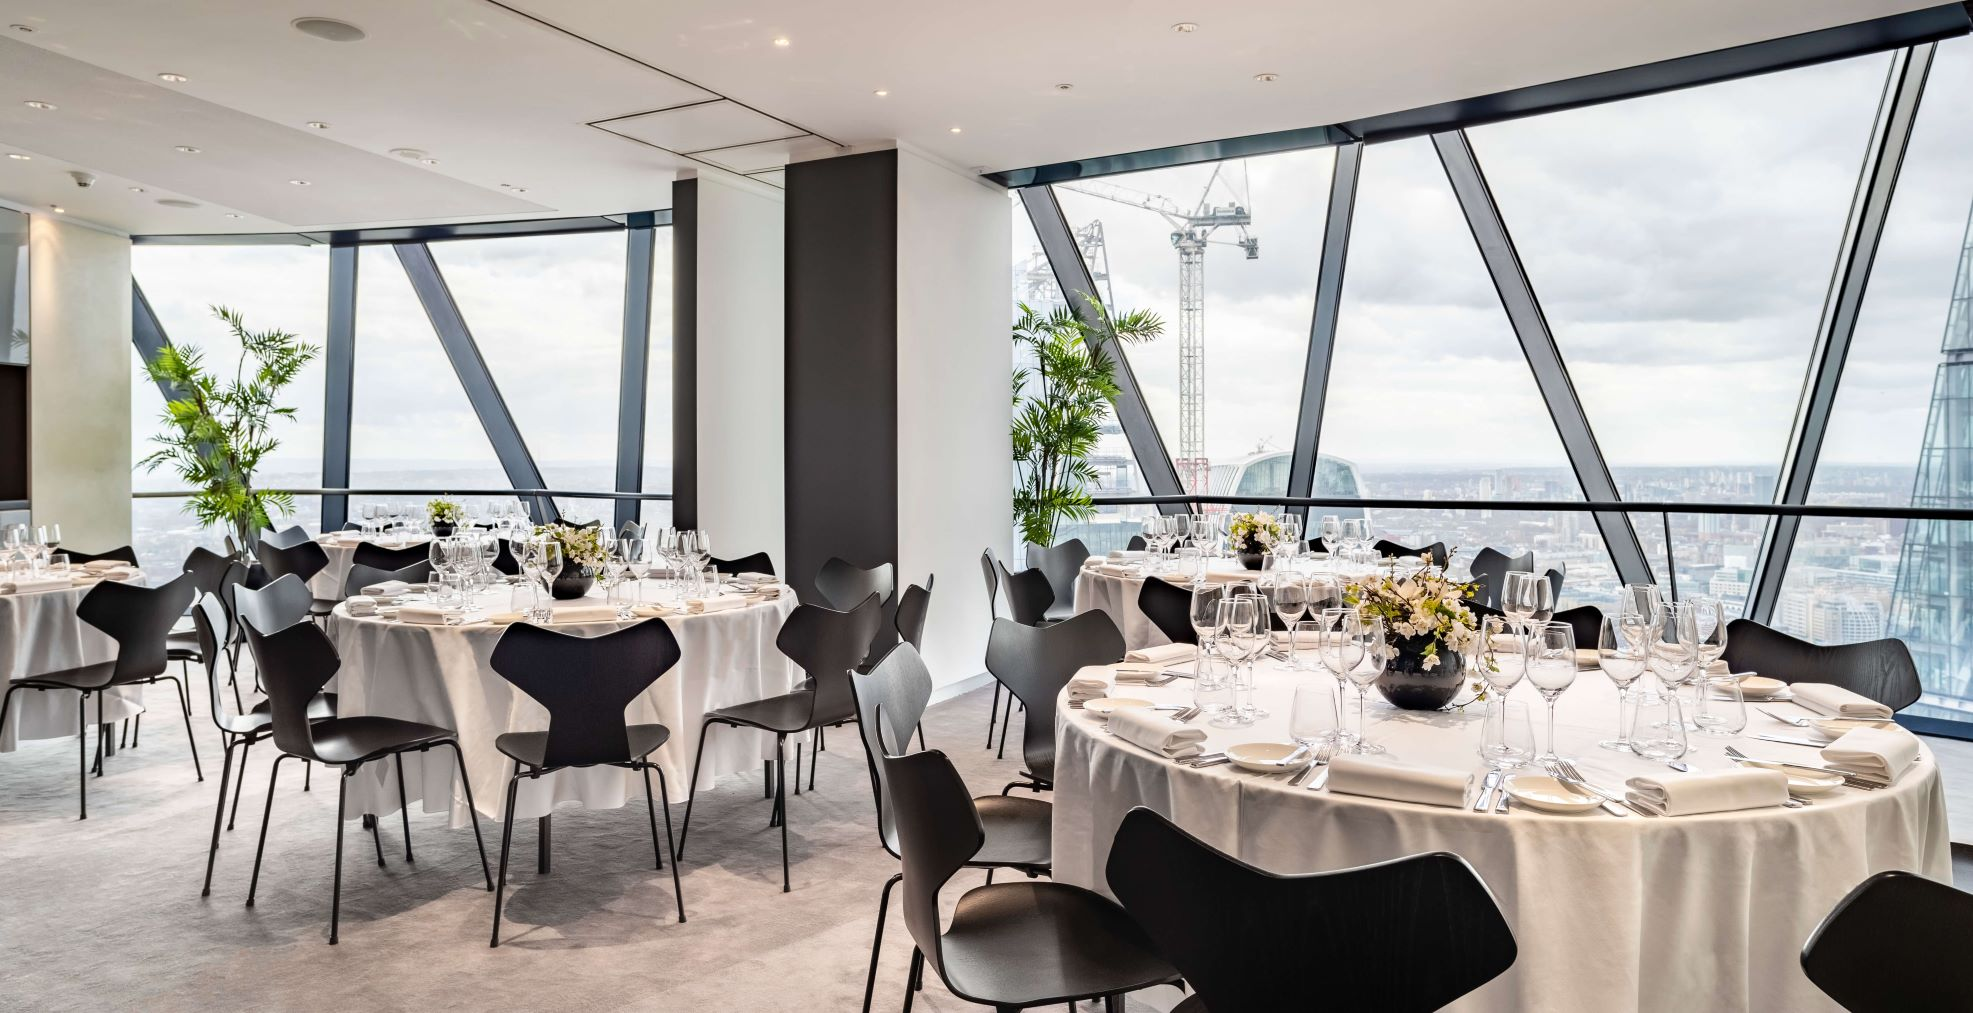 Harvest Wine Dinner at The Gherkin